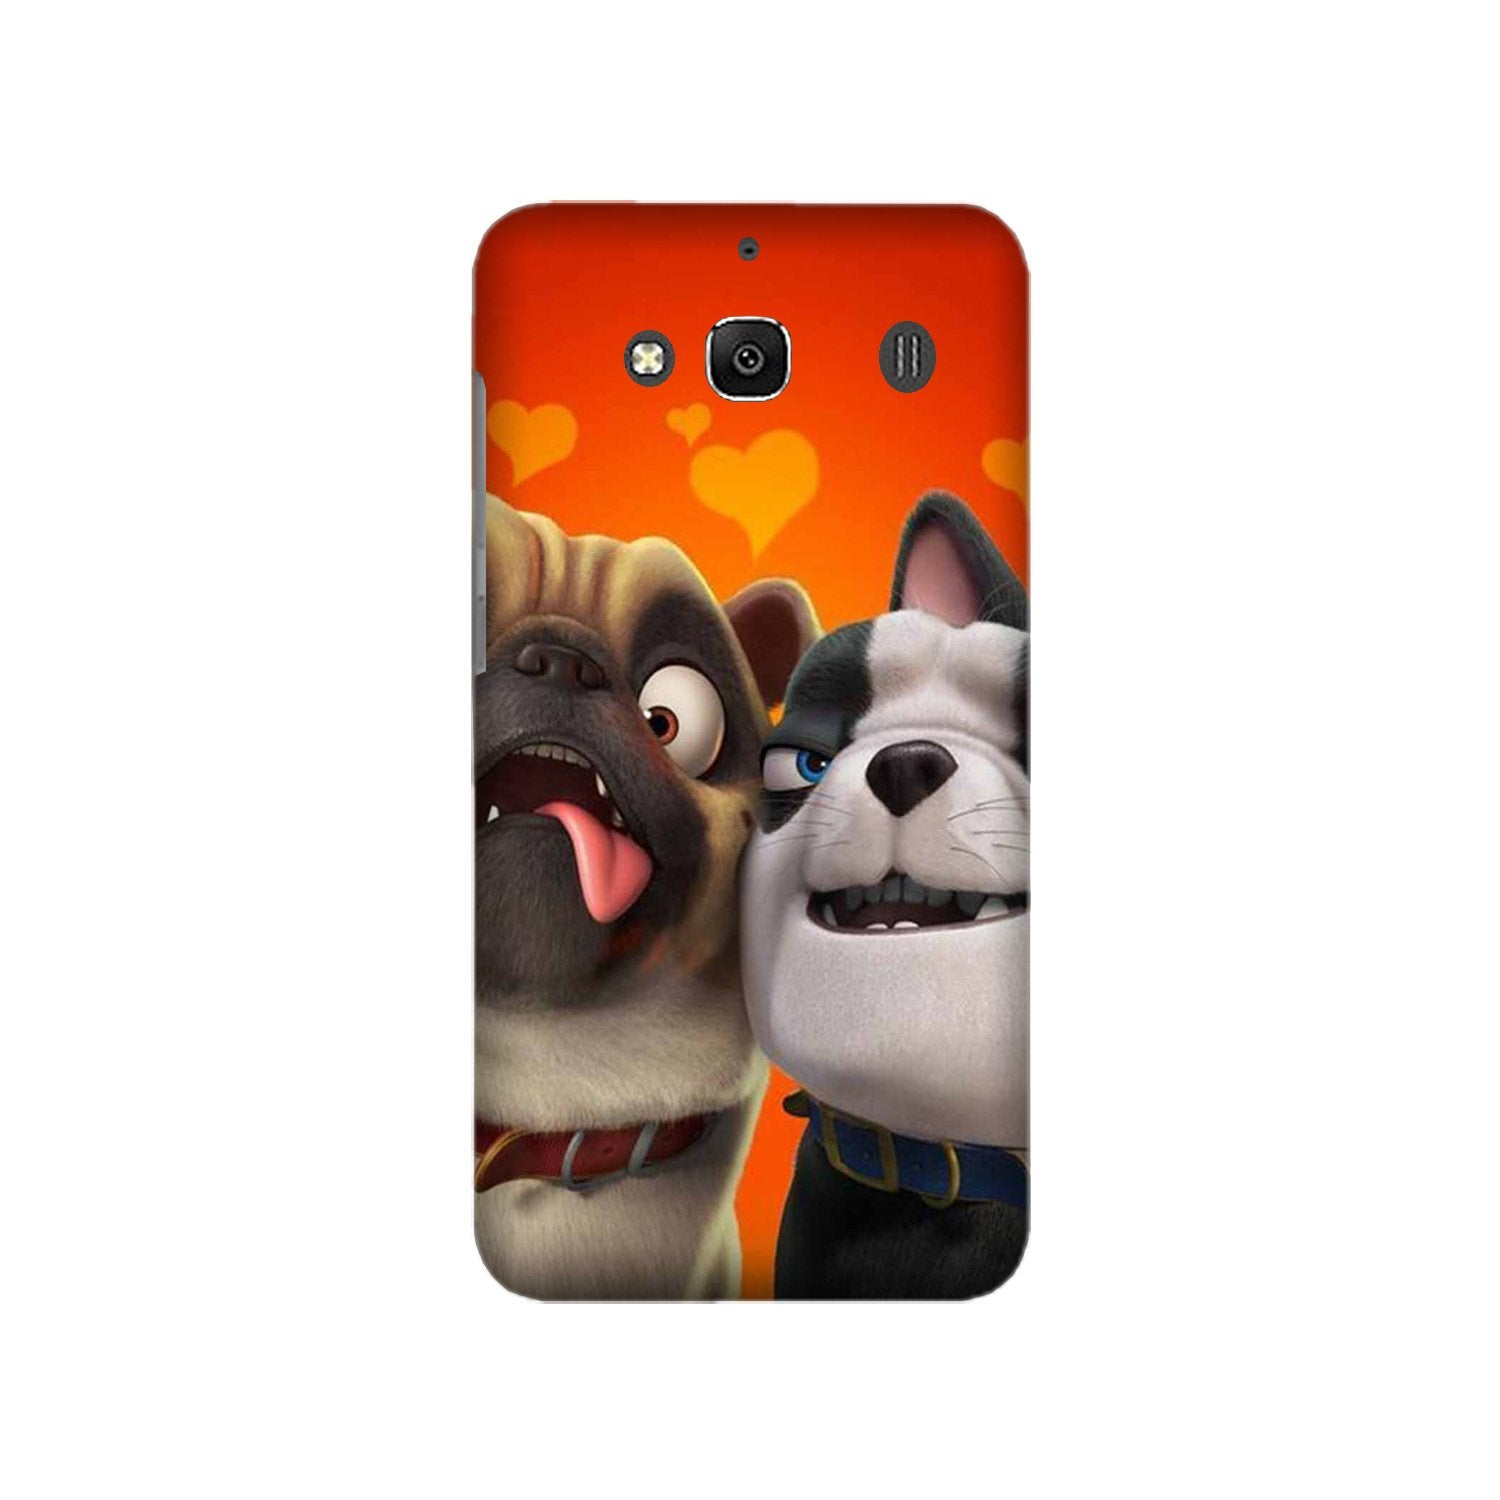 Dog Puppy Mobile Back Case for Redmi 2 Prime  (Design - 350)